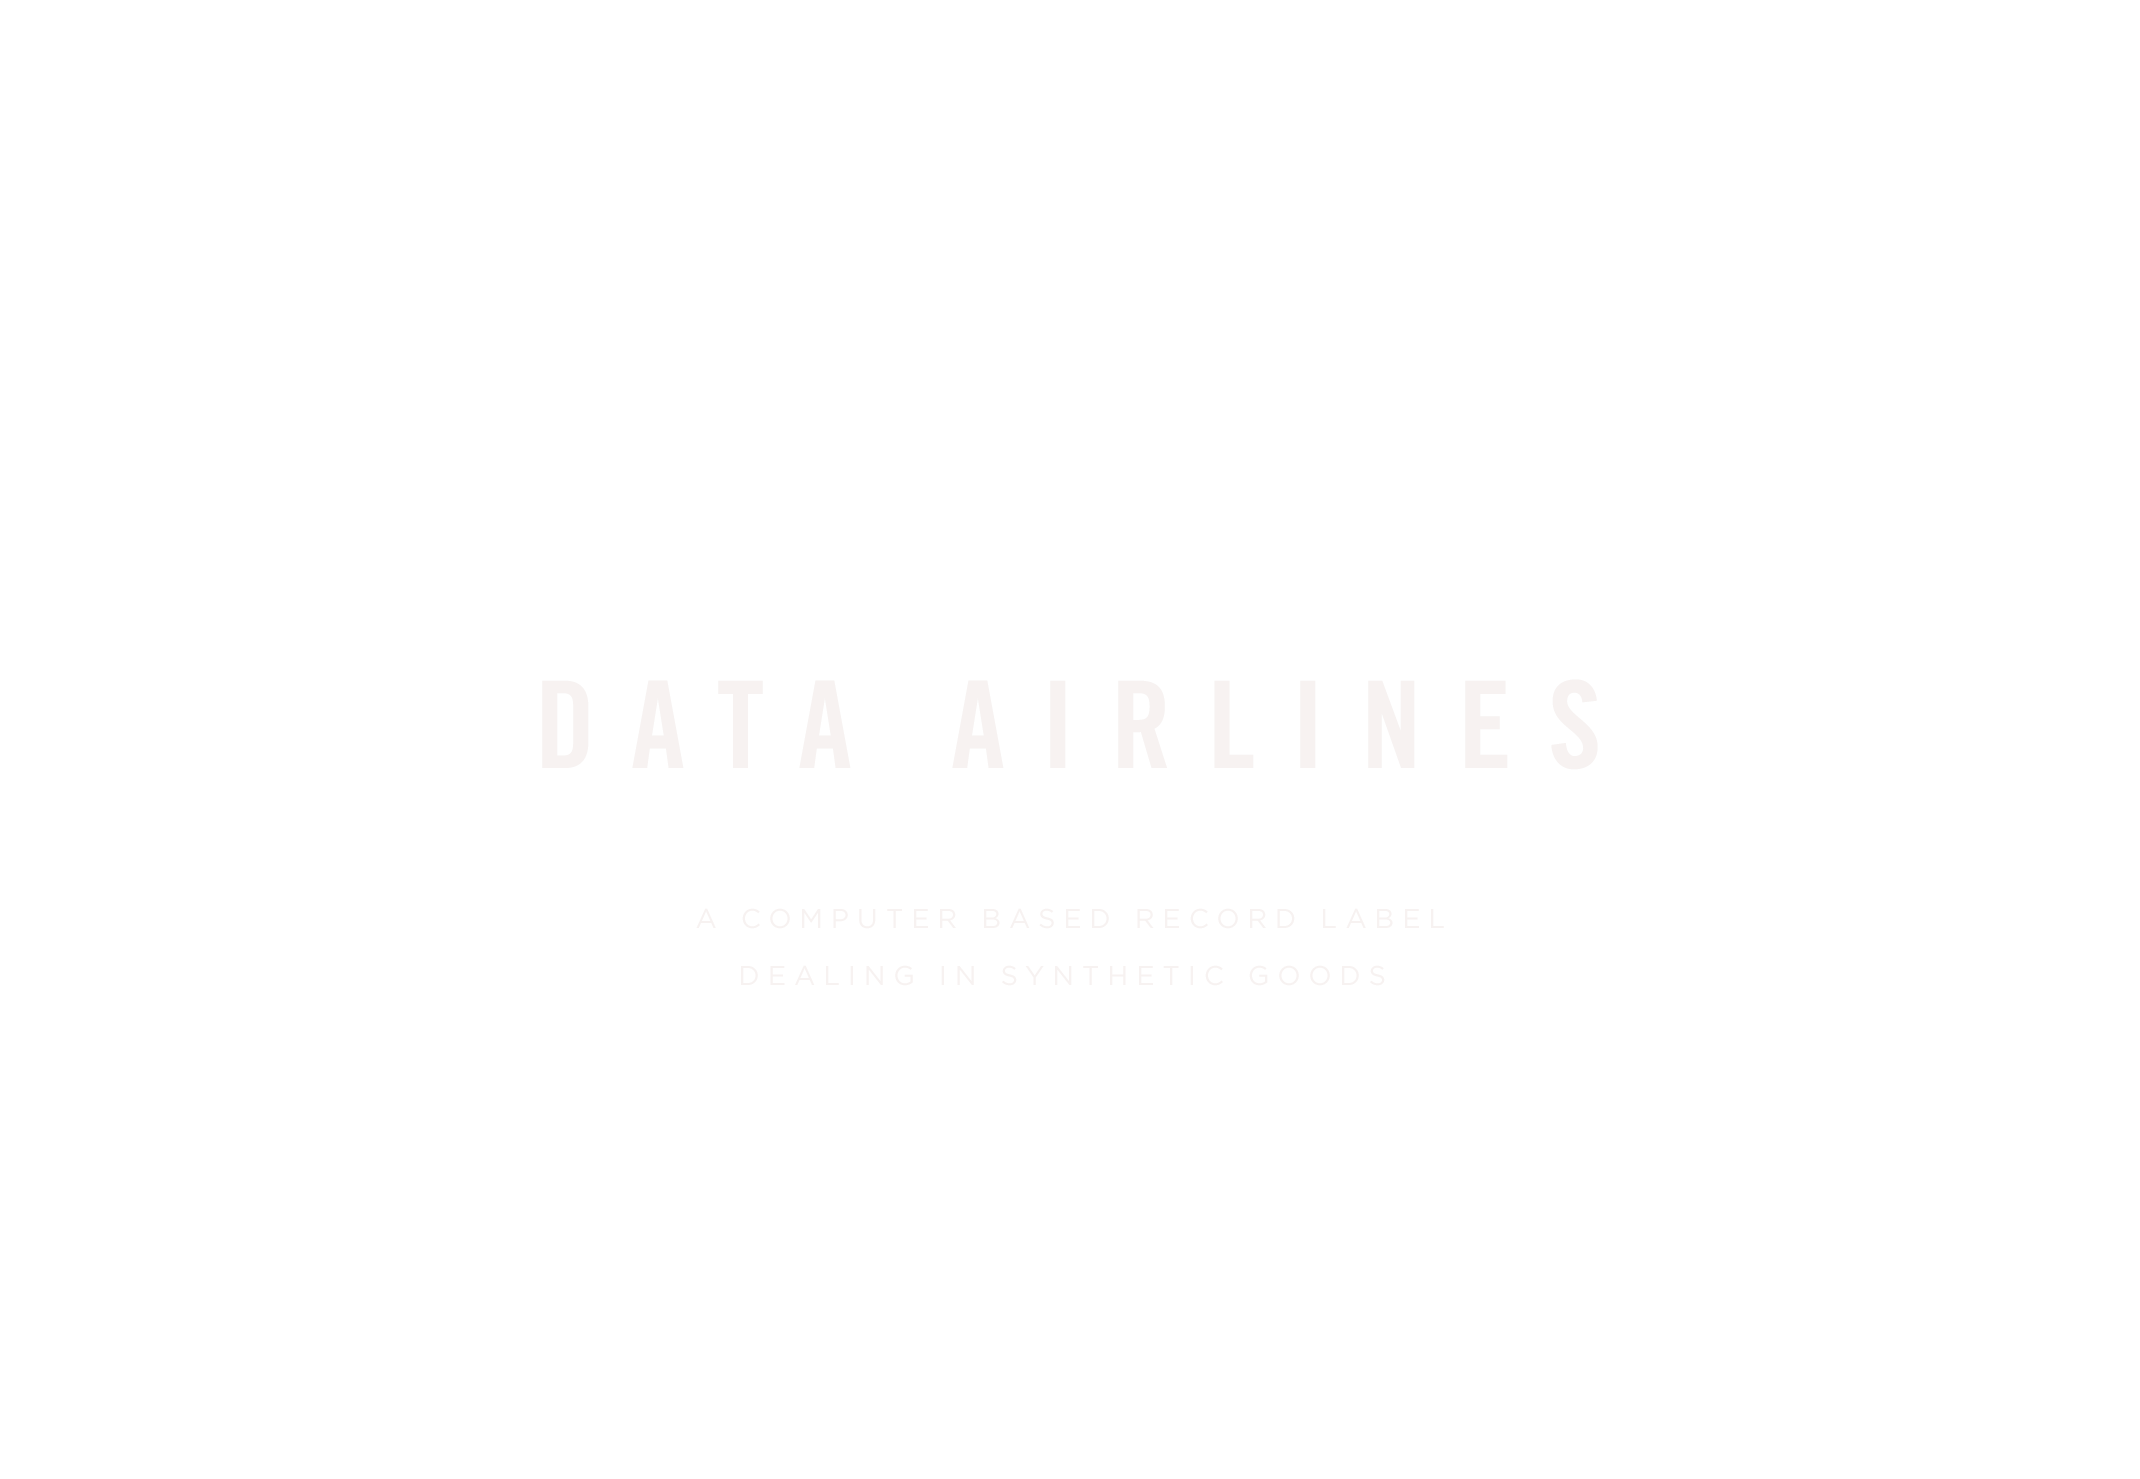 Data Airlines